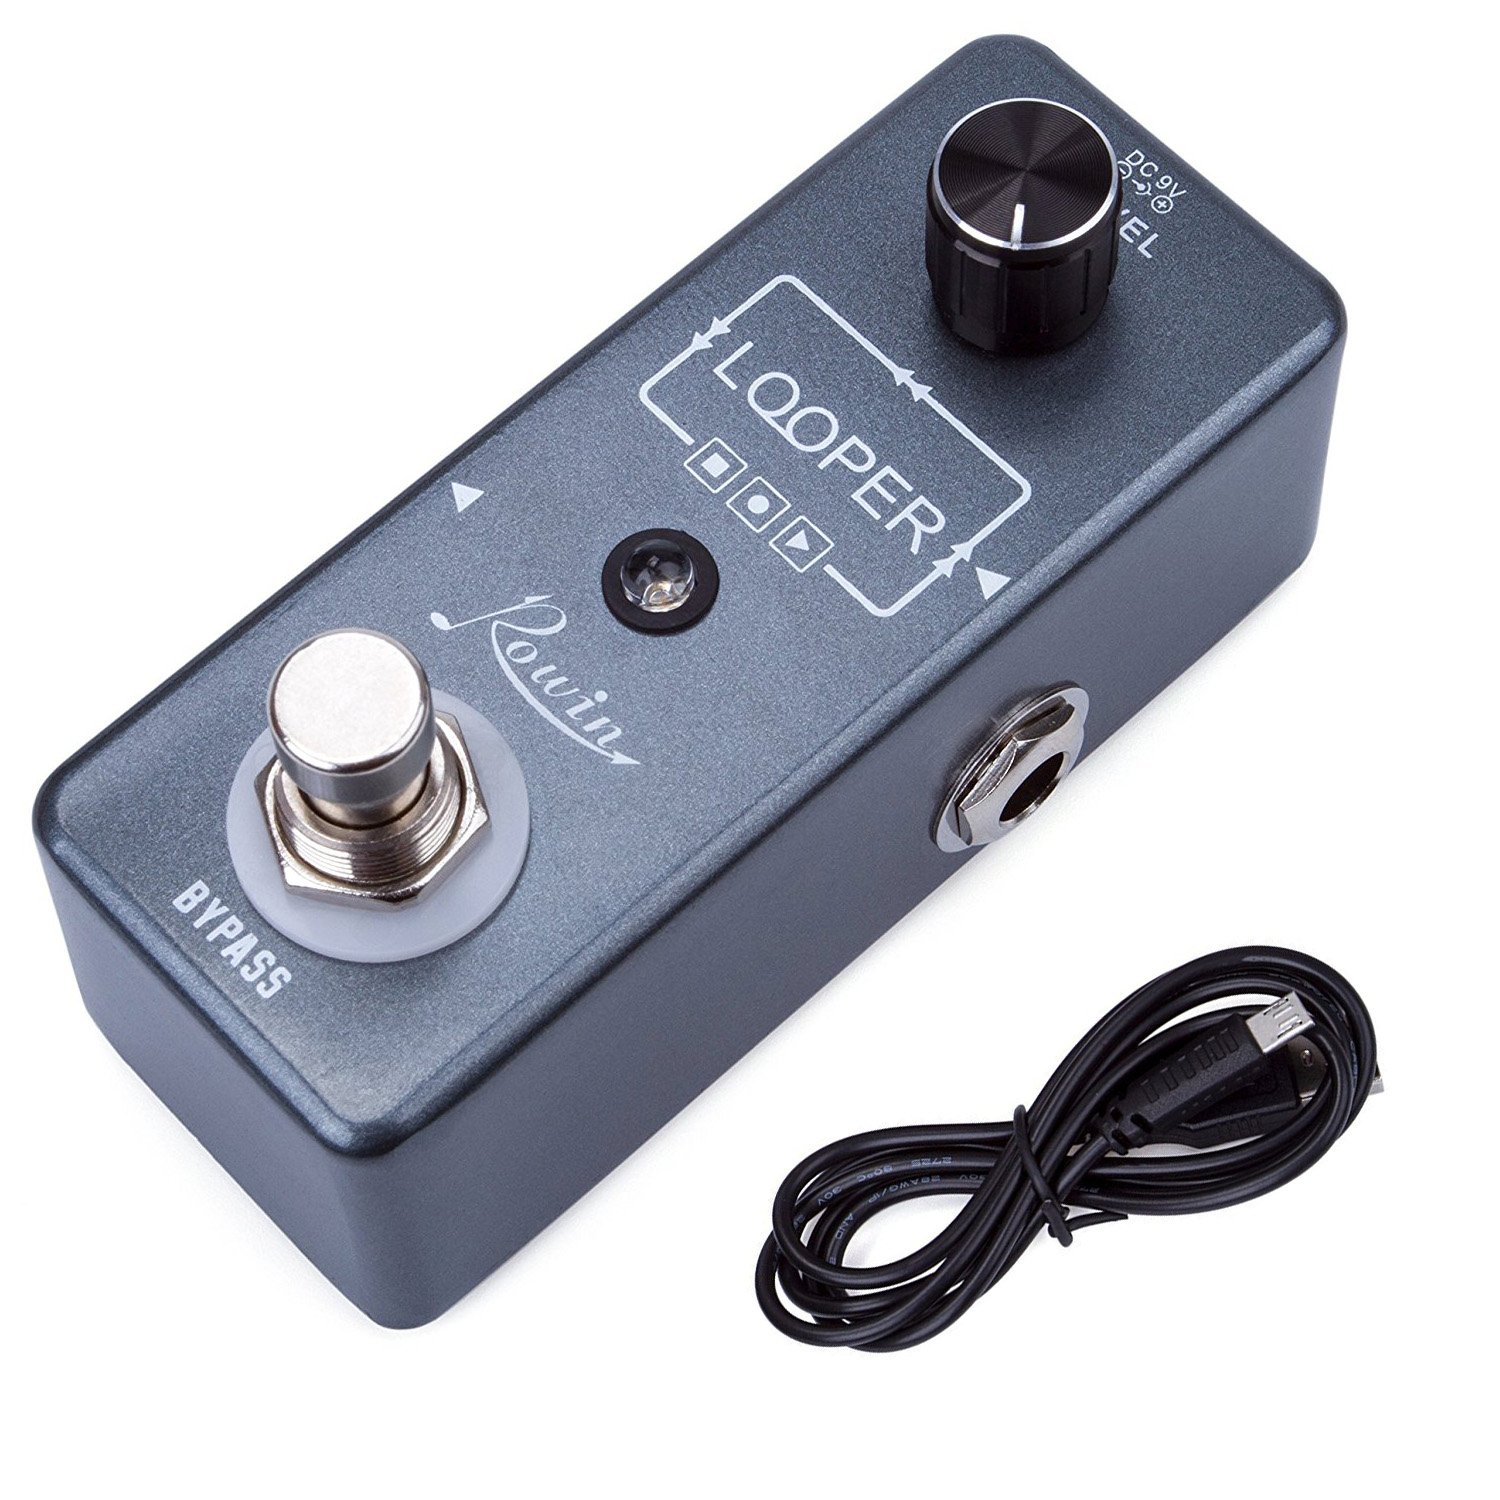 Rowin Guitar Looper Effects Pedal Unlimited Overdubs 10 Minutes of Looping with USB Cable